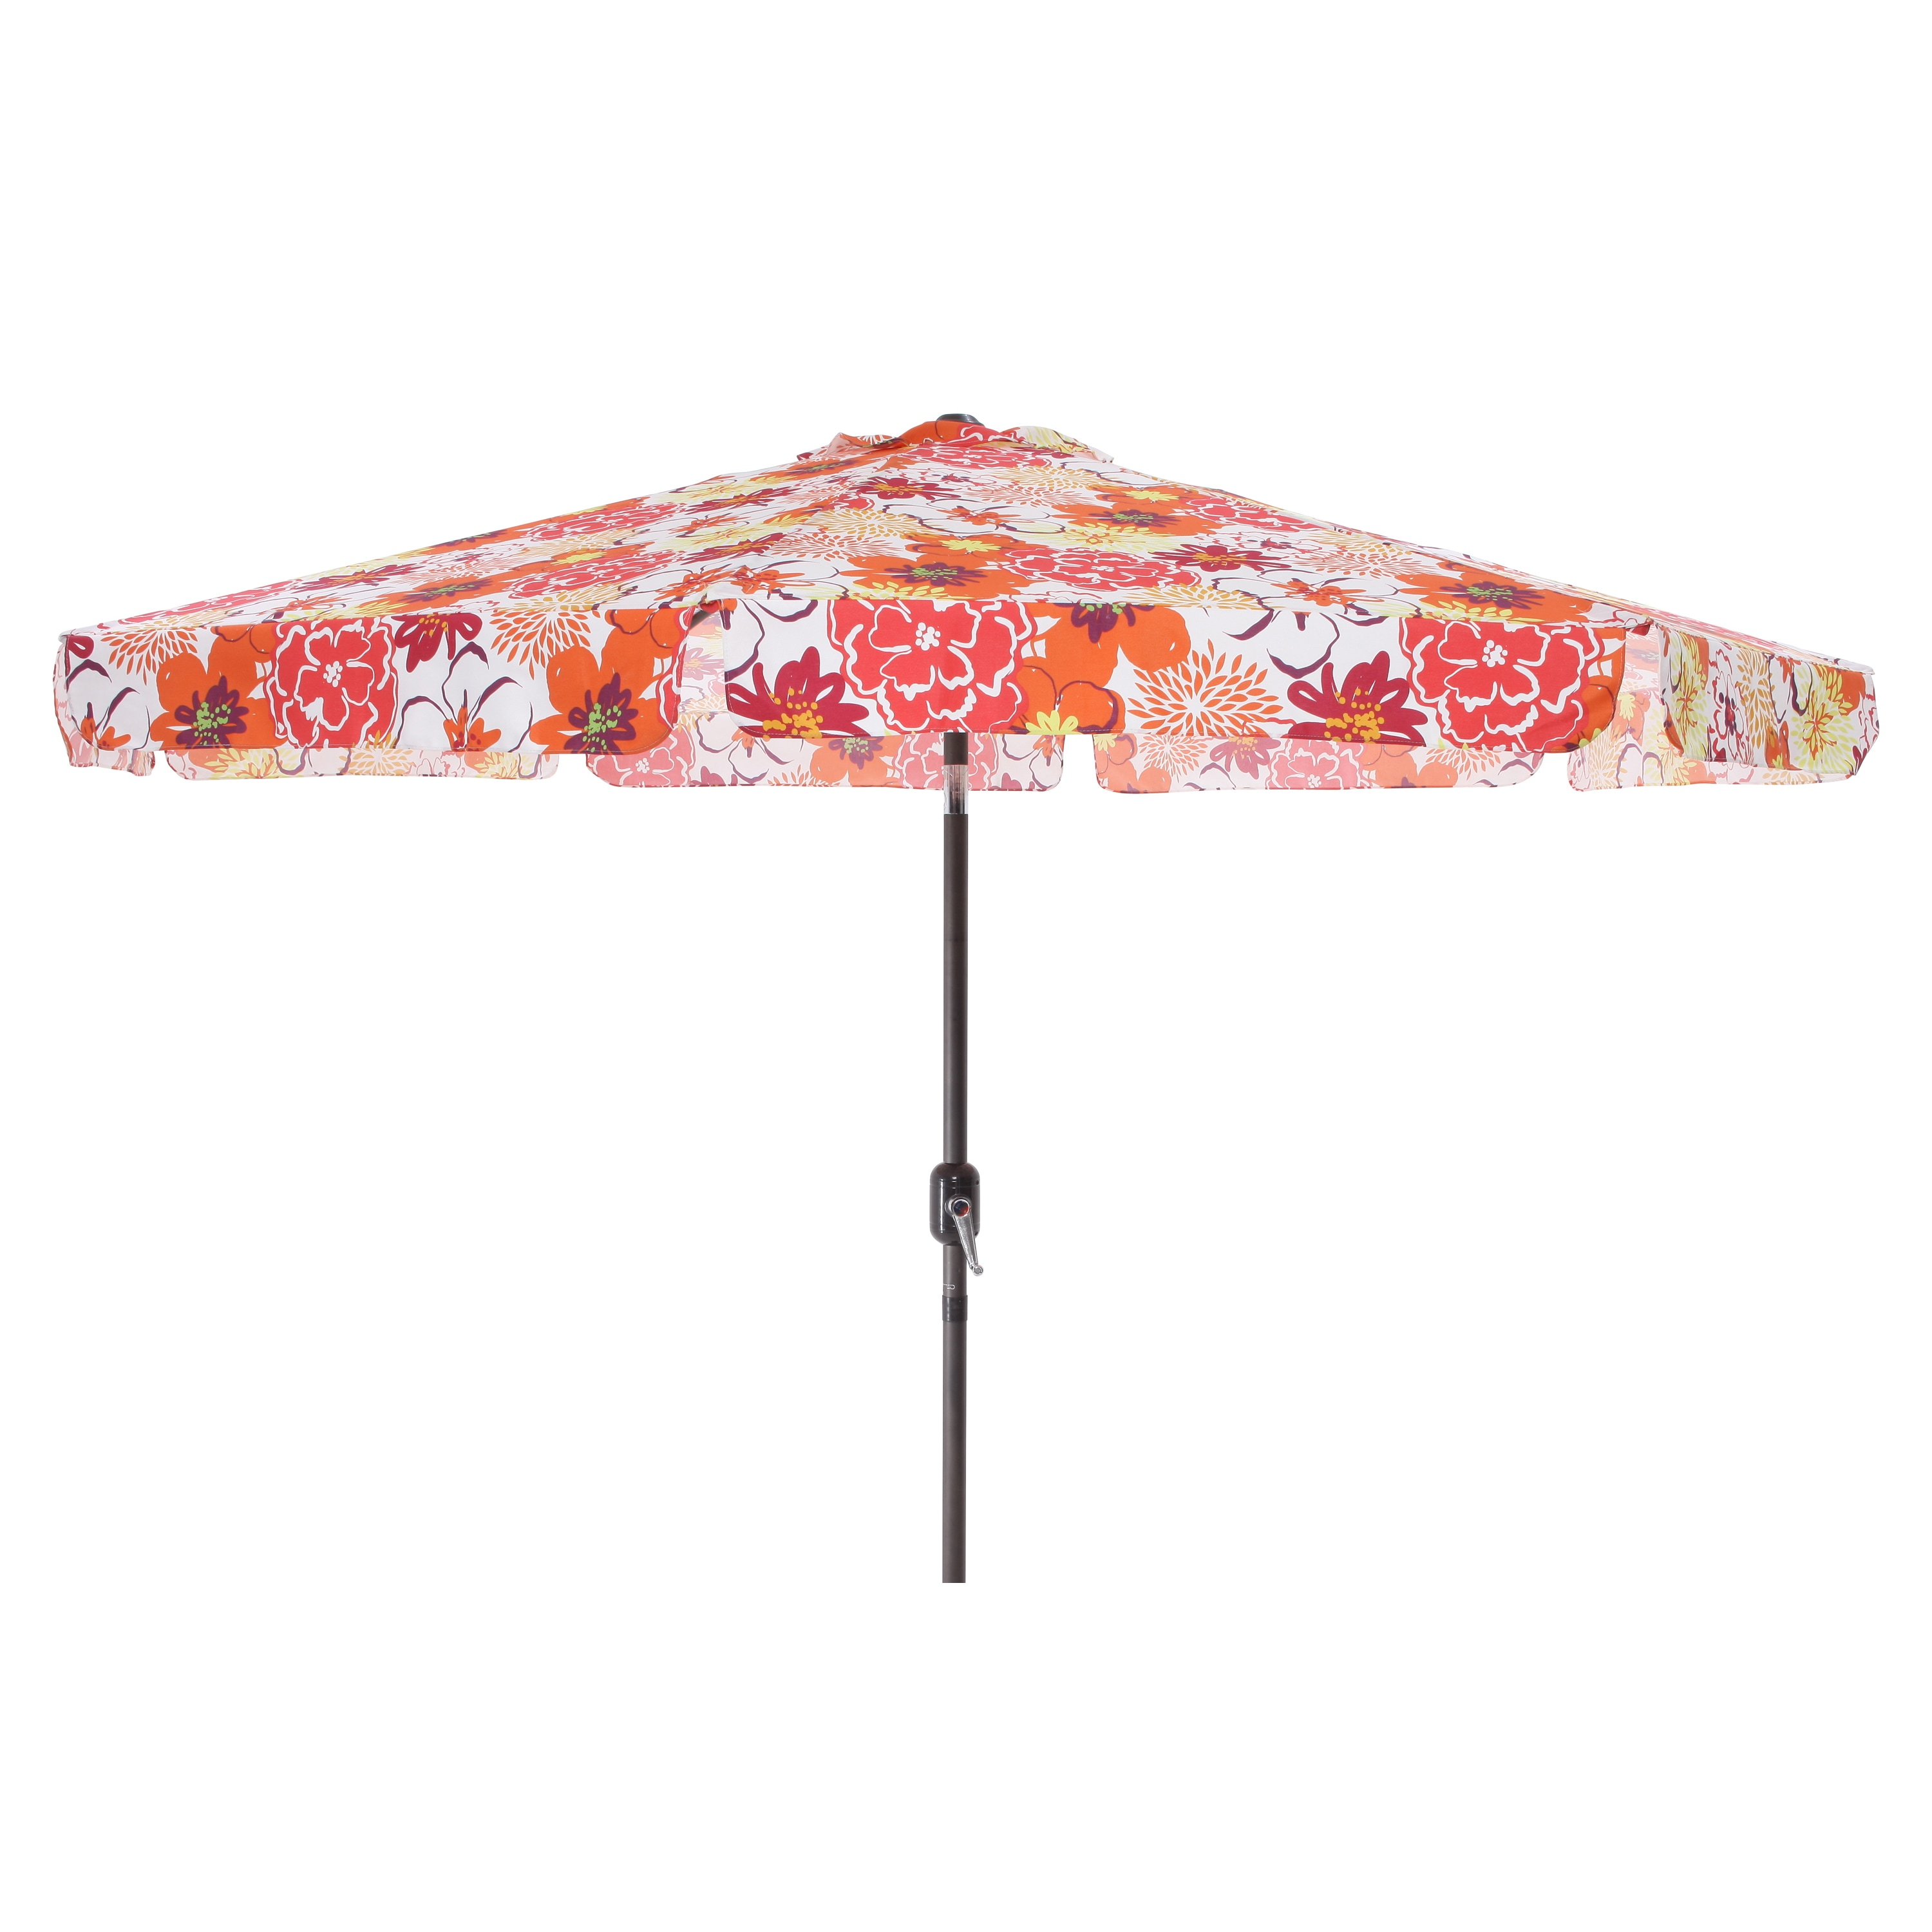 Pillow Perfect Floral Fantasy Raspberry 9-foot Patio Umbrella at Sears.com